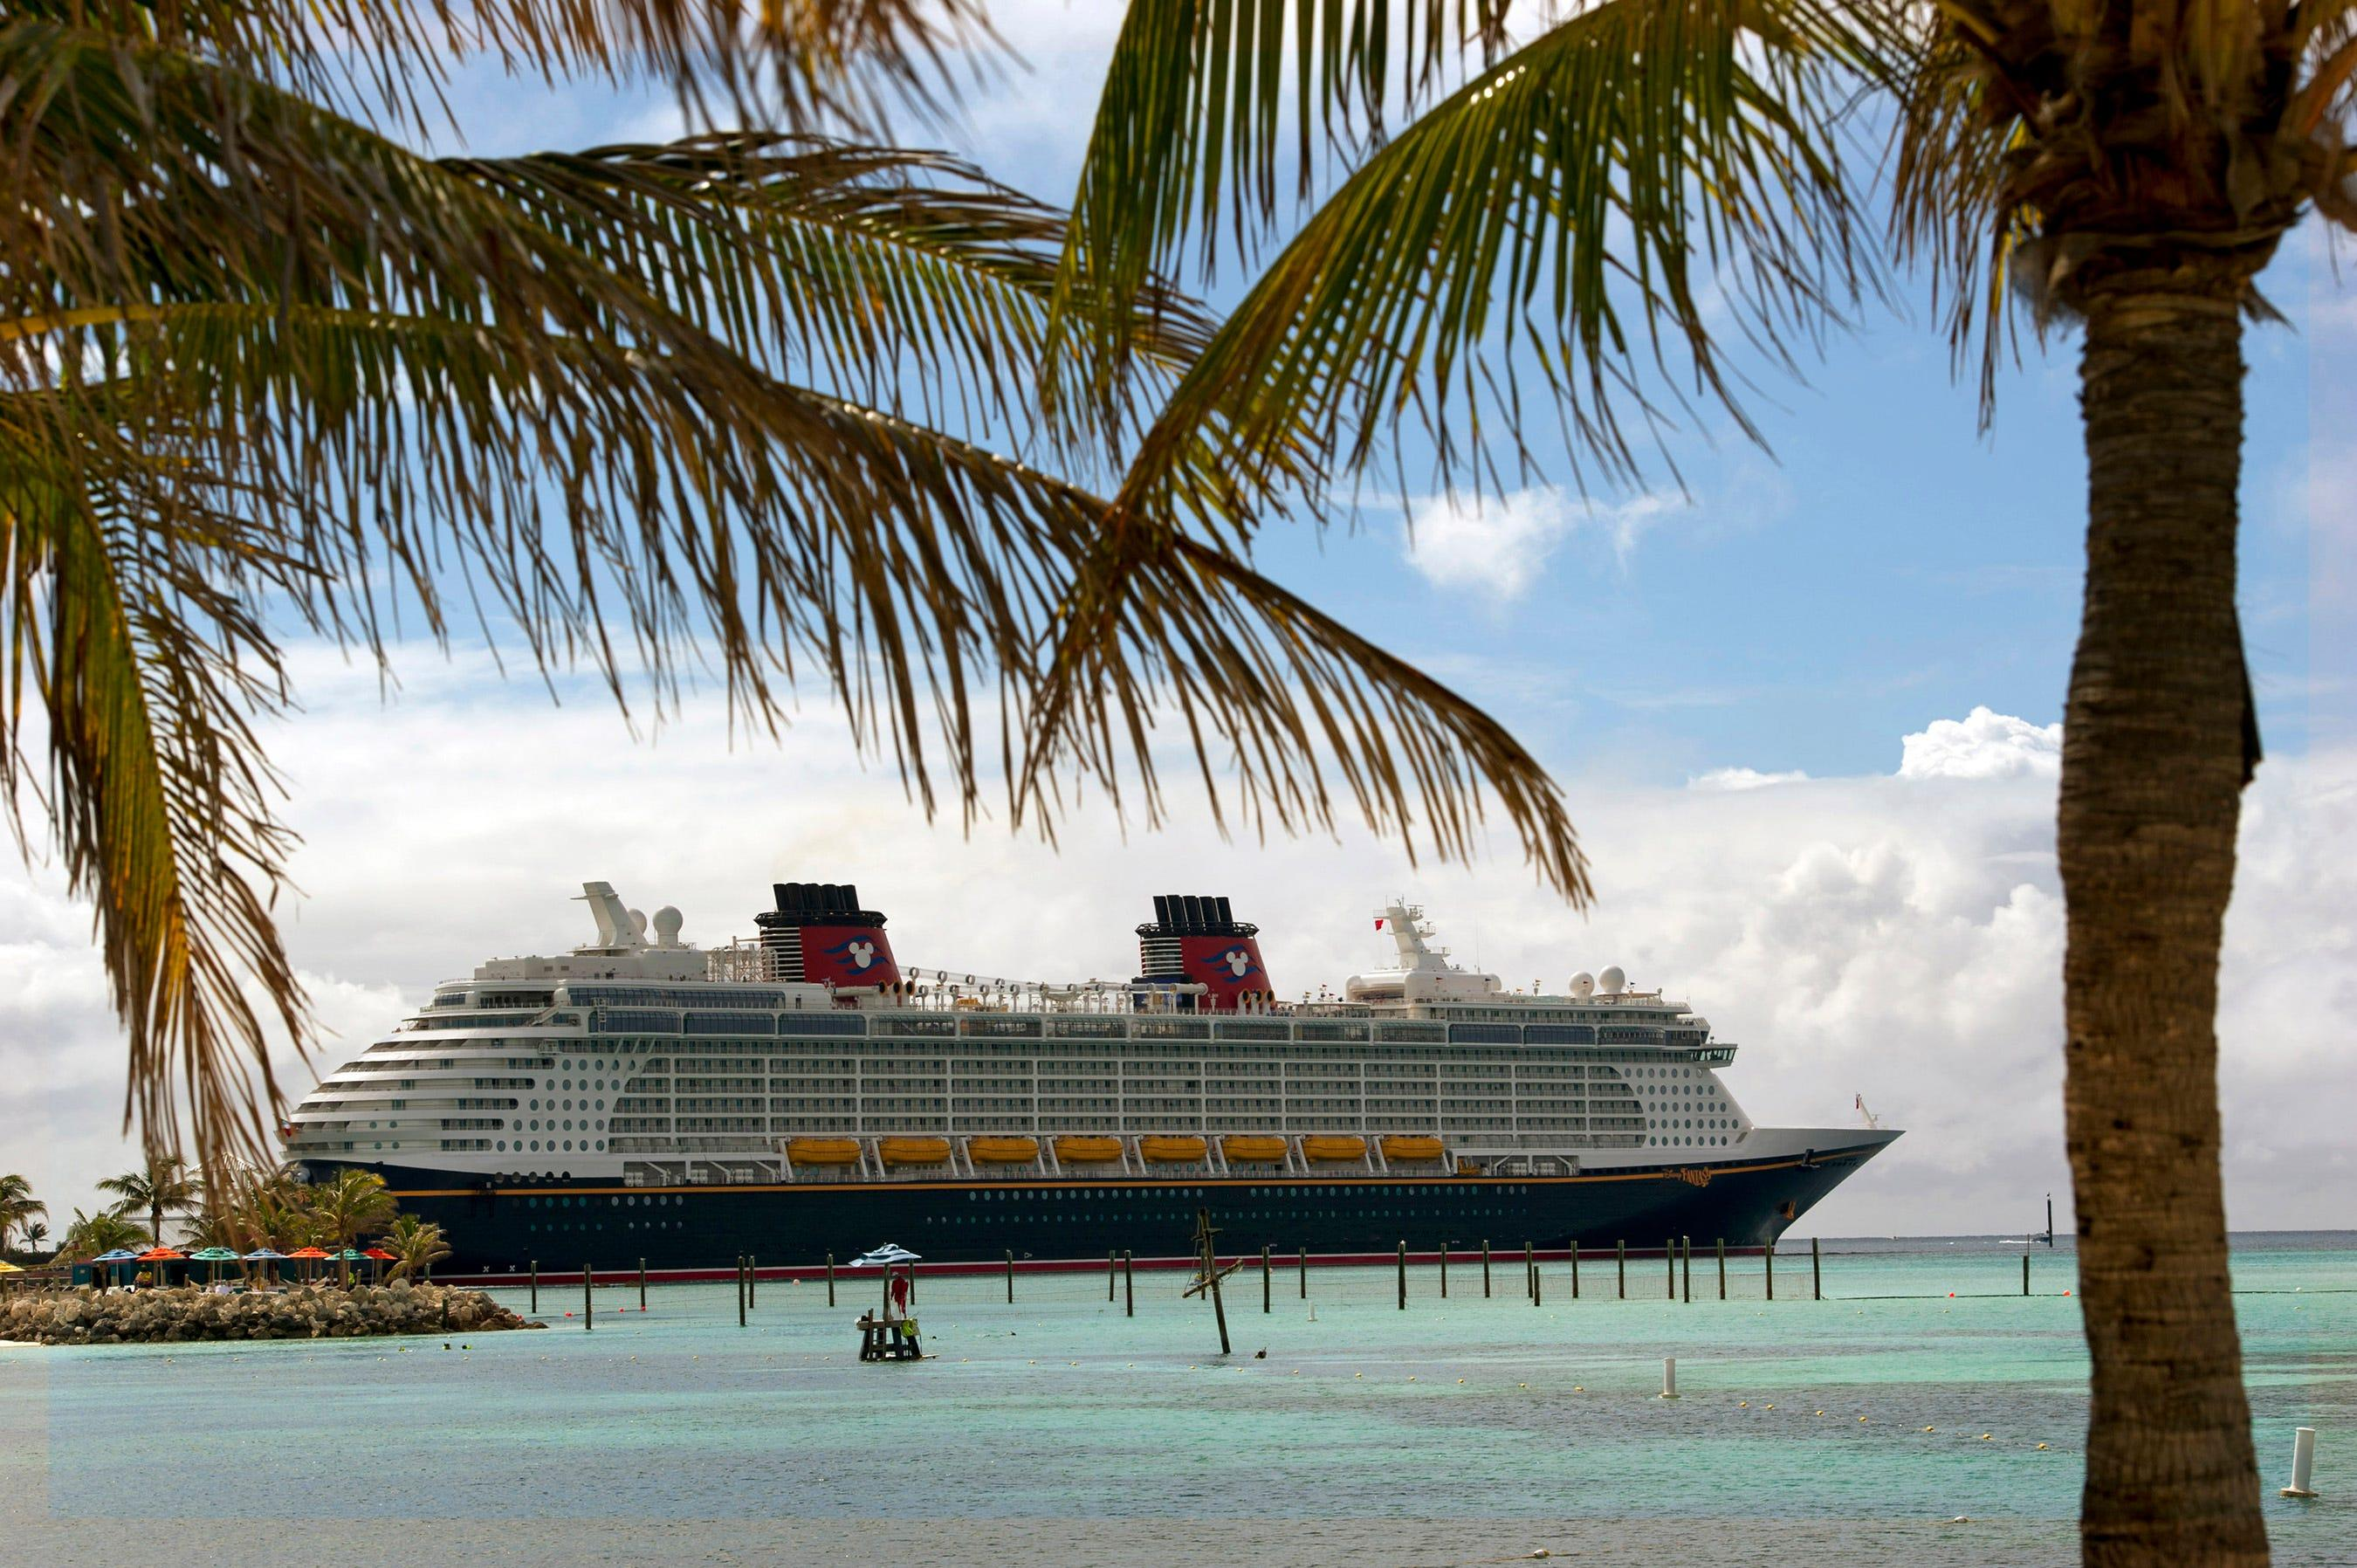 Disney Cruise Line named 'world's best' by Travel + Leisure readers